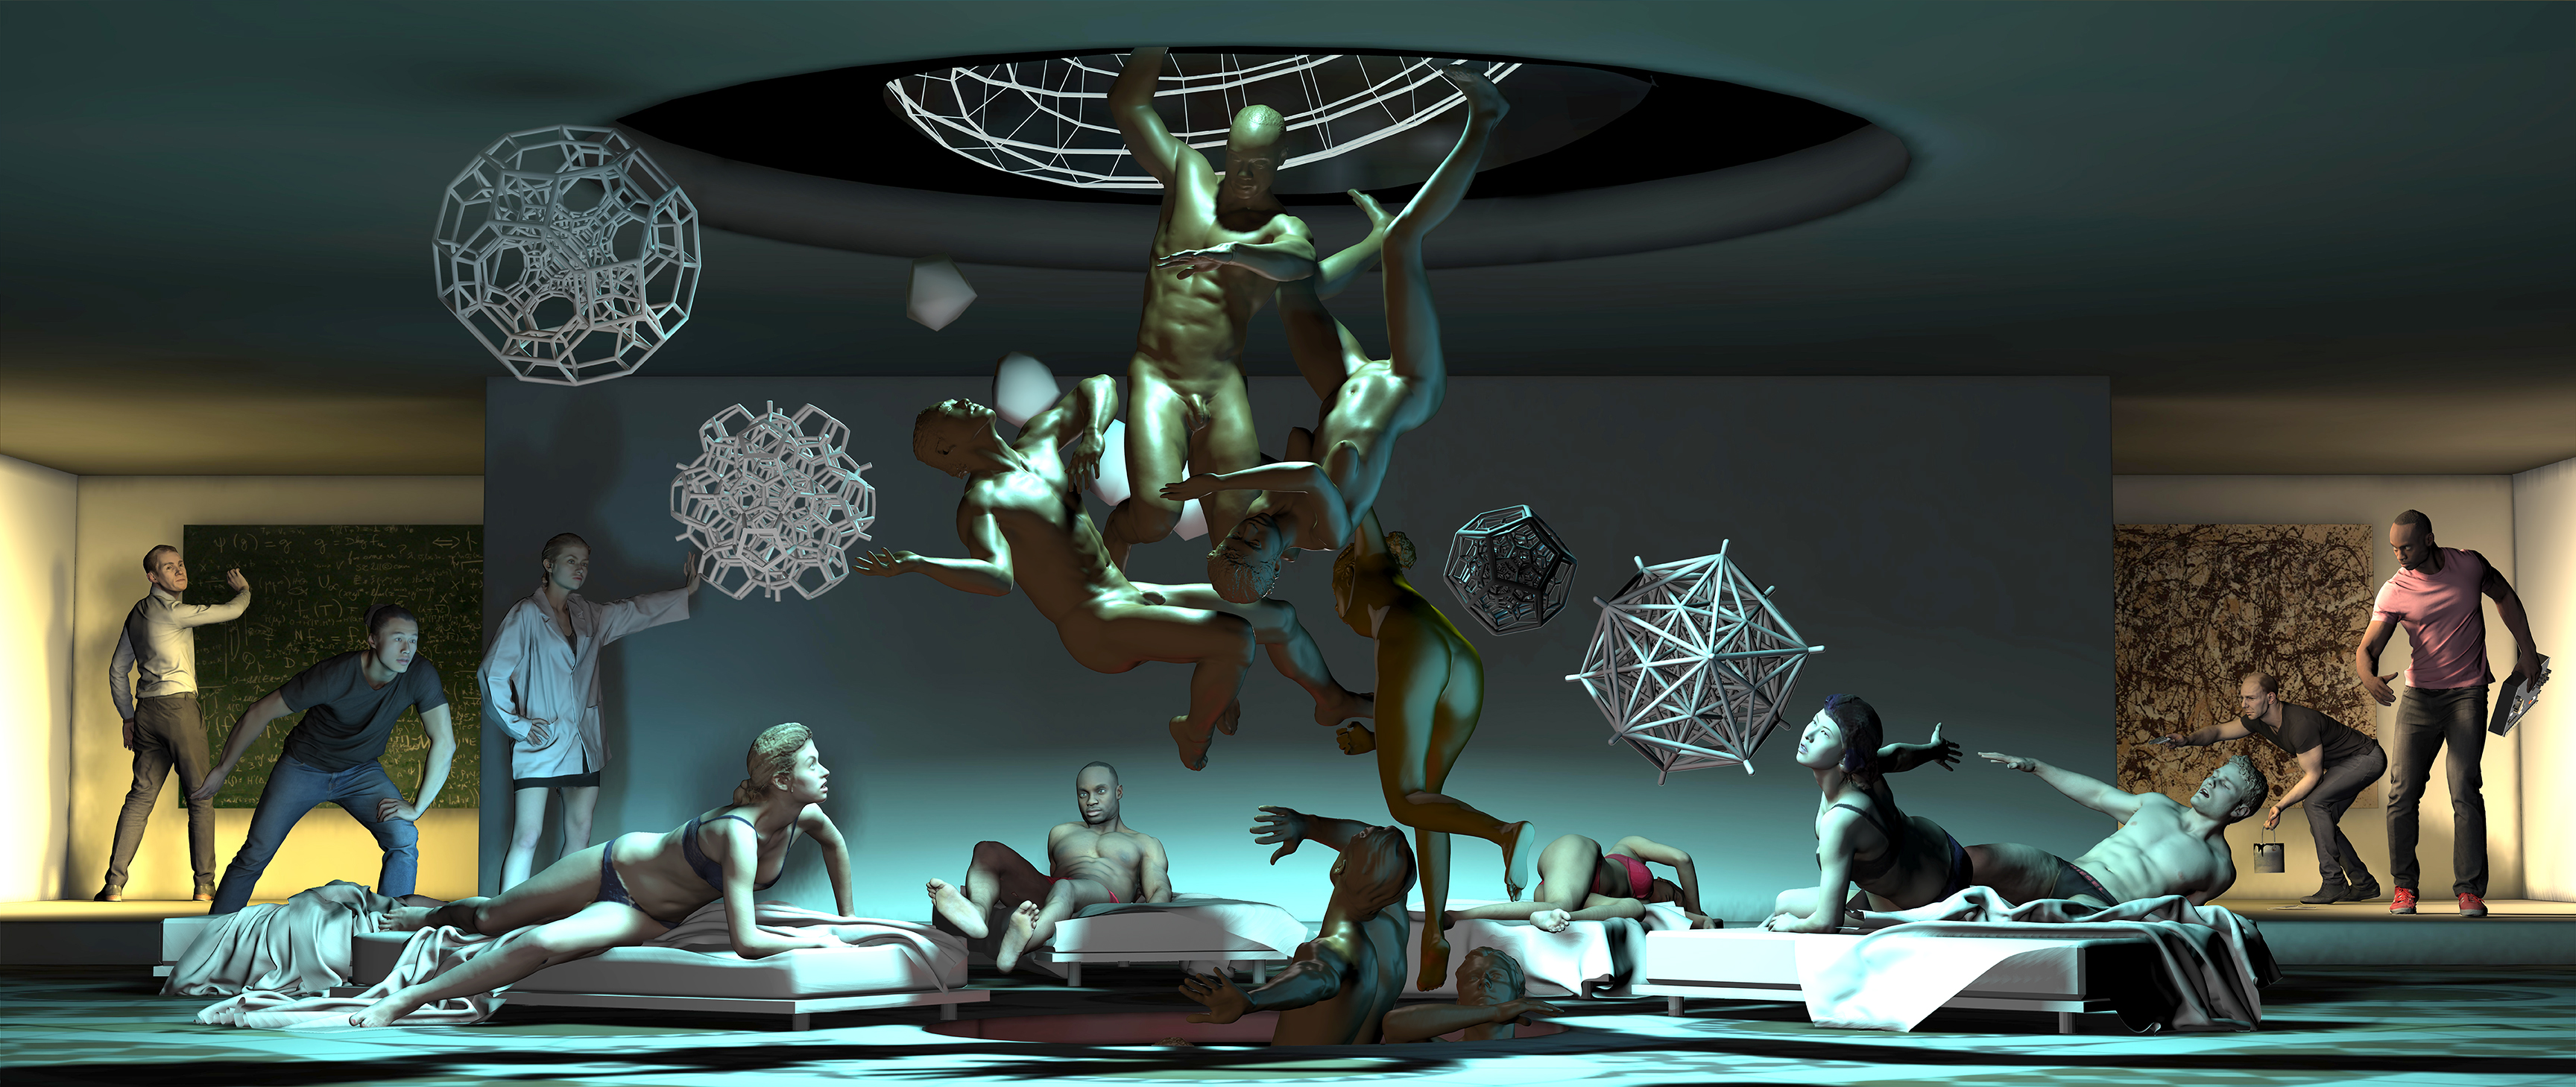 People standing around a gallery while some lay in beds across the floor. Four naked figures are floating up through the center.